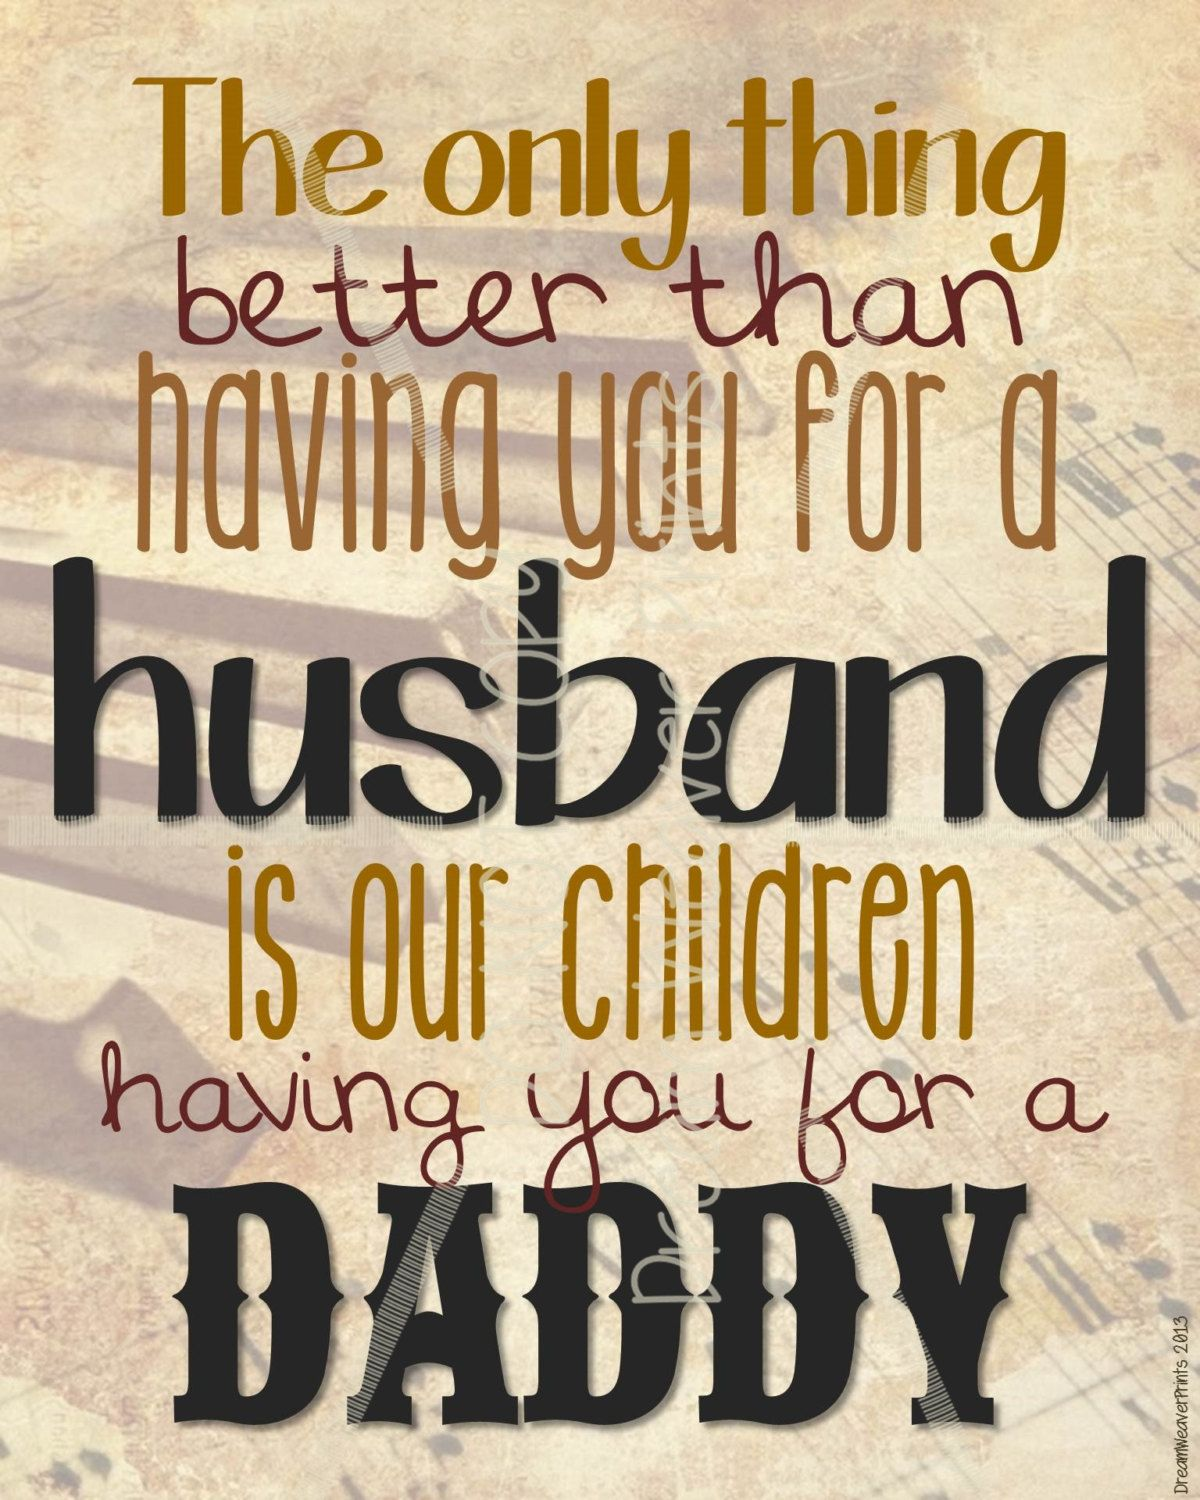 Fathers Day Quotes Happy Fathers Day Wishes For Husband Httpwww.quotesmeme